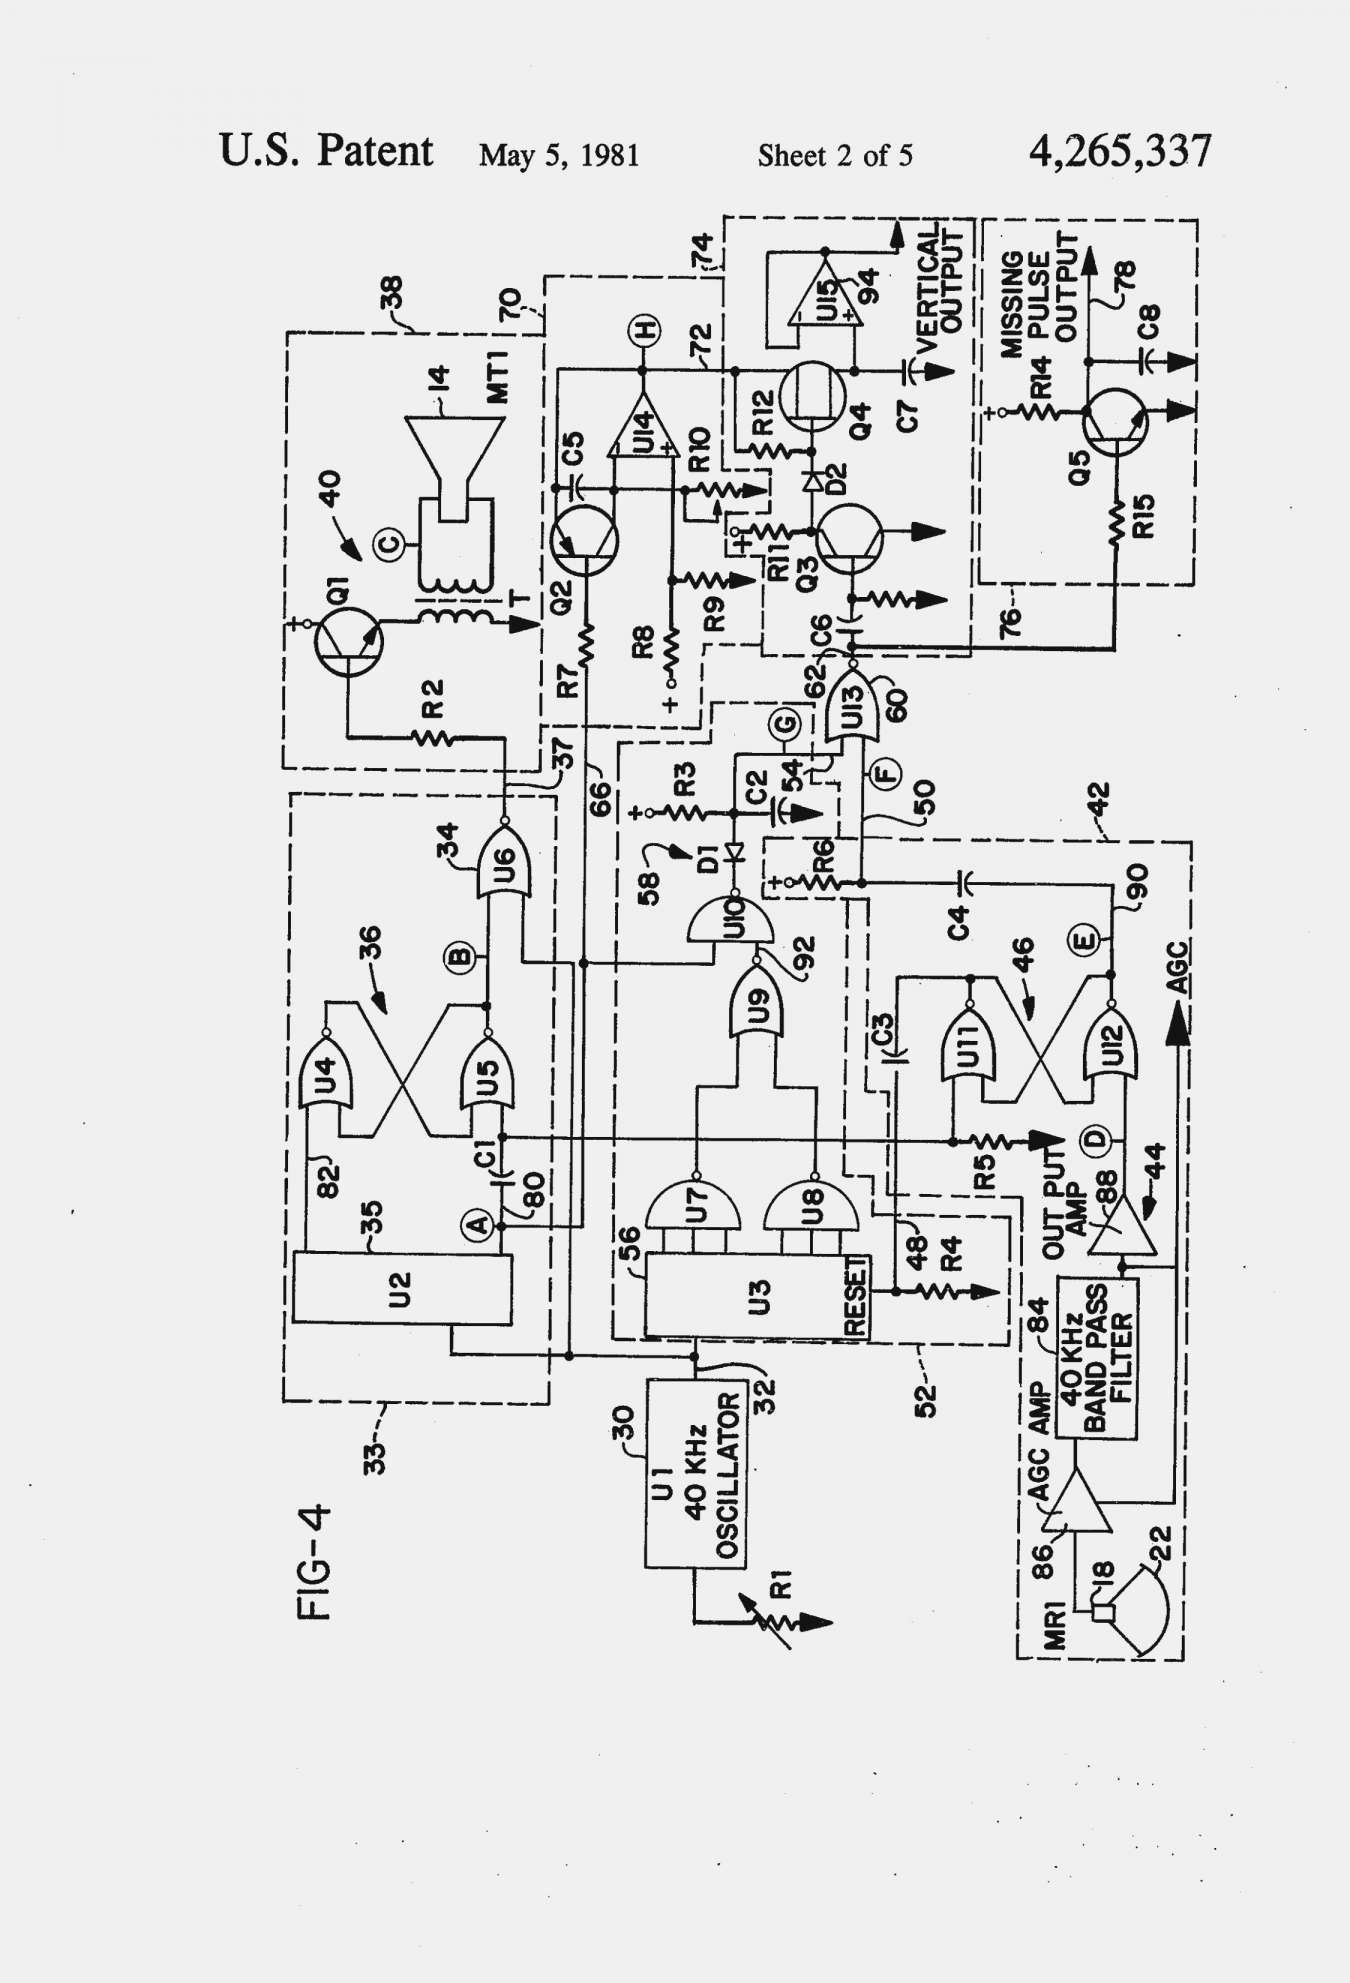 [DIAGRAM] Hyster S120xms Forklift Wiring Diagram FULL